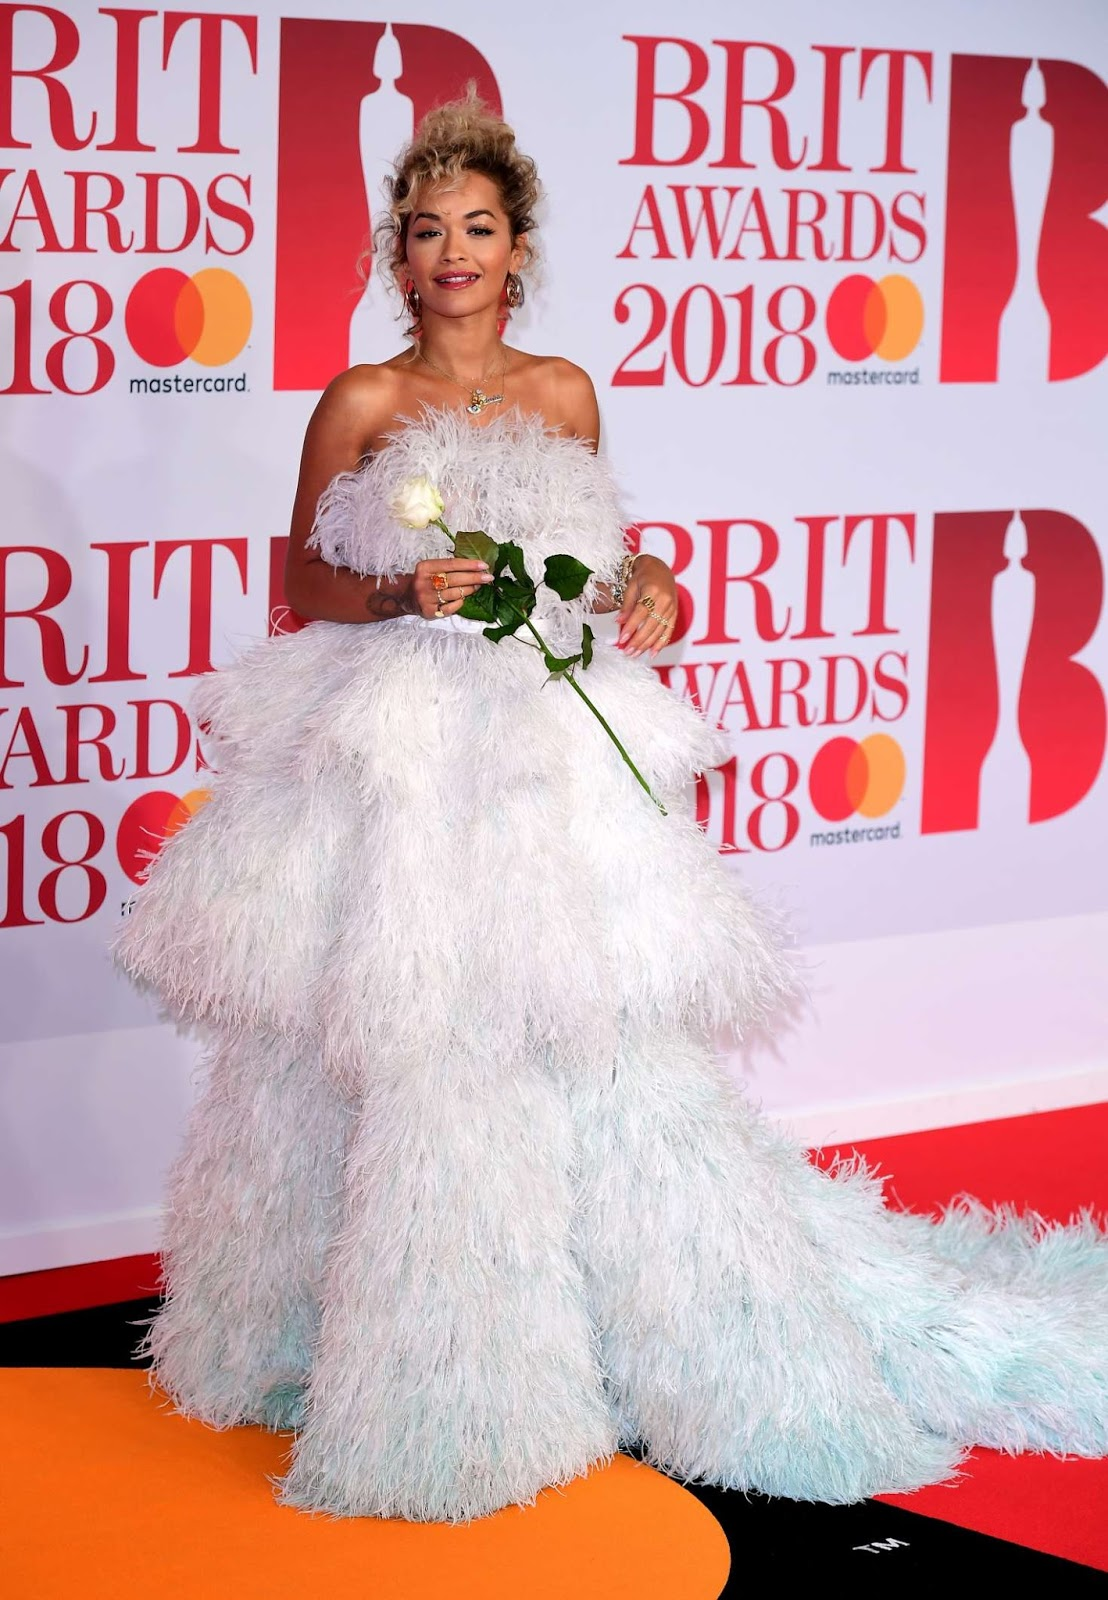 Rita Ora oozes off sartorial elegance at the 2018 BRIT Awards